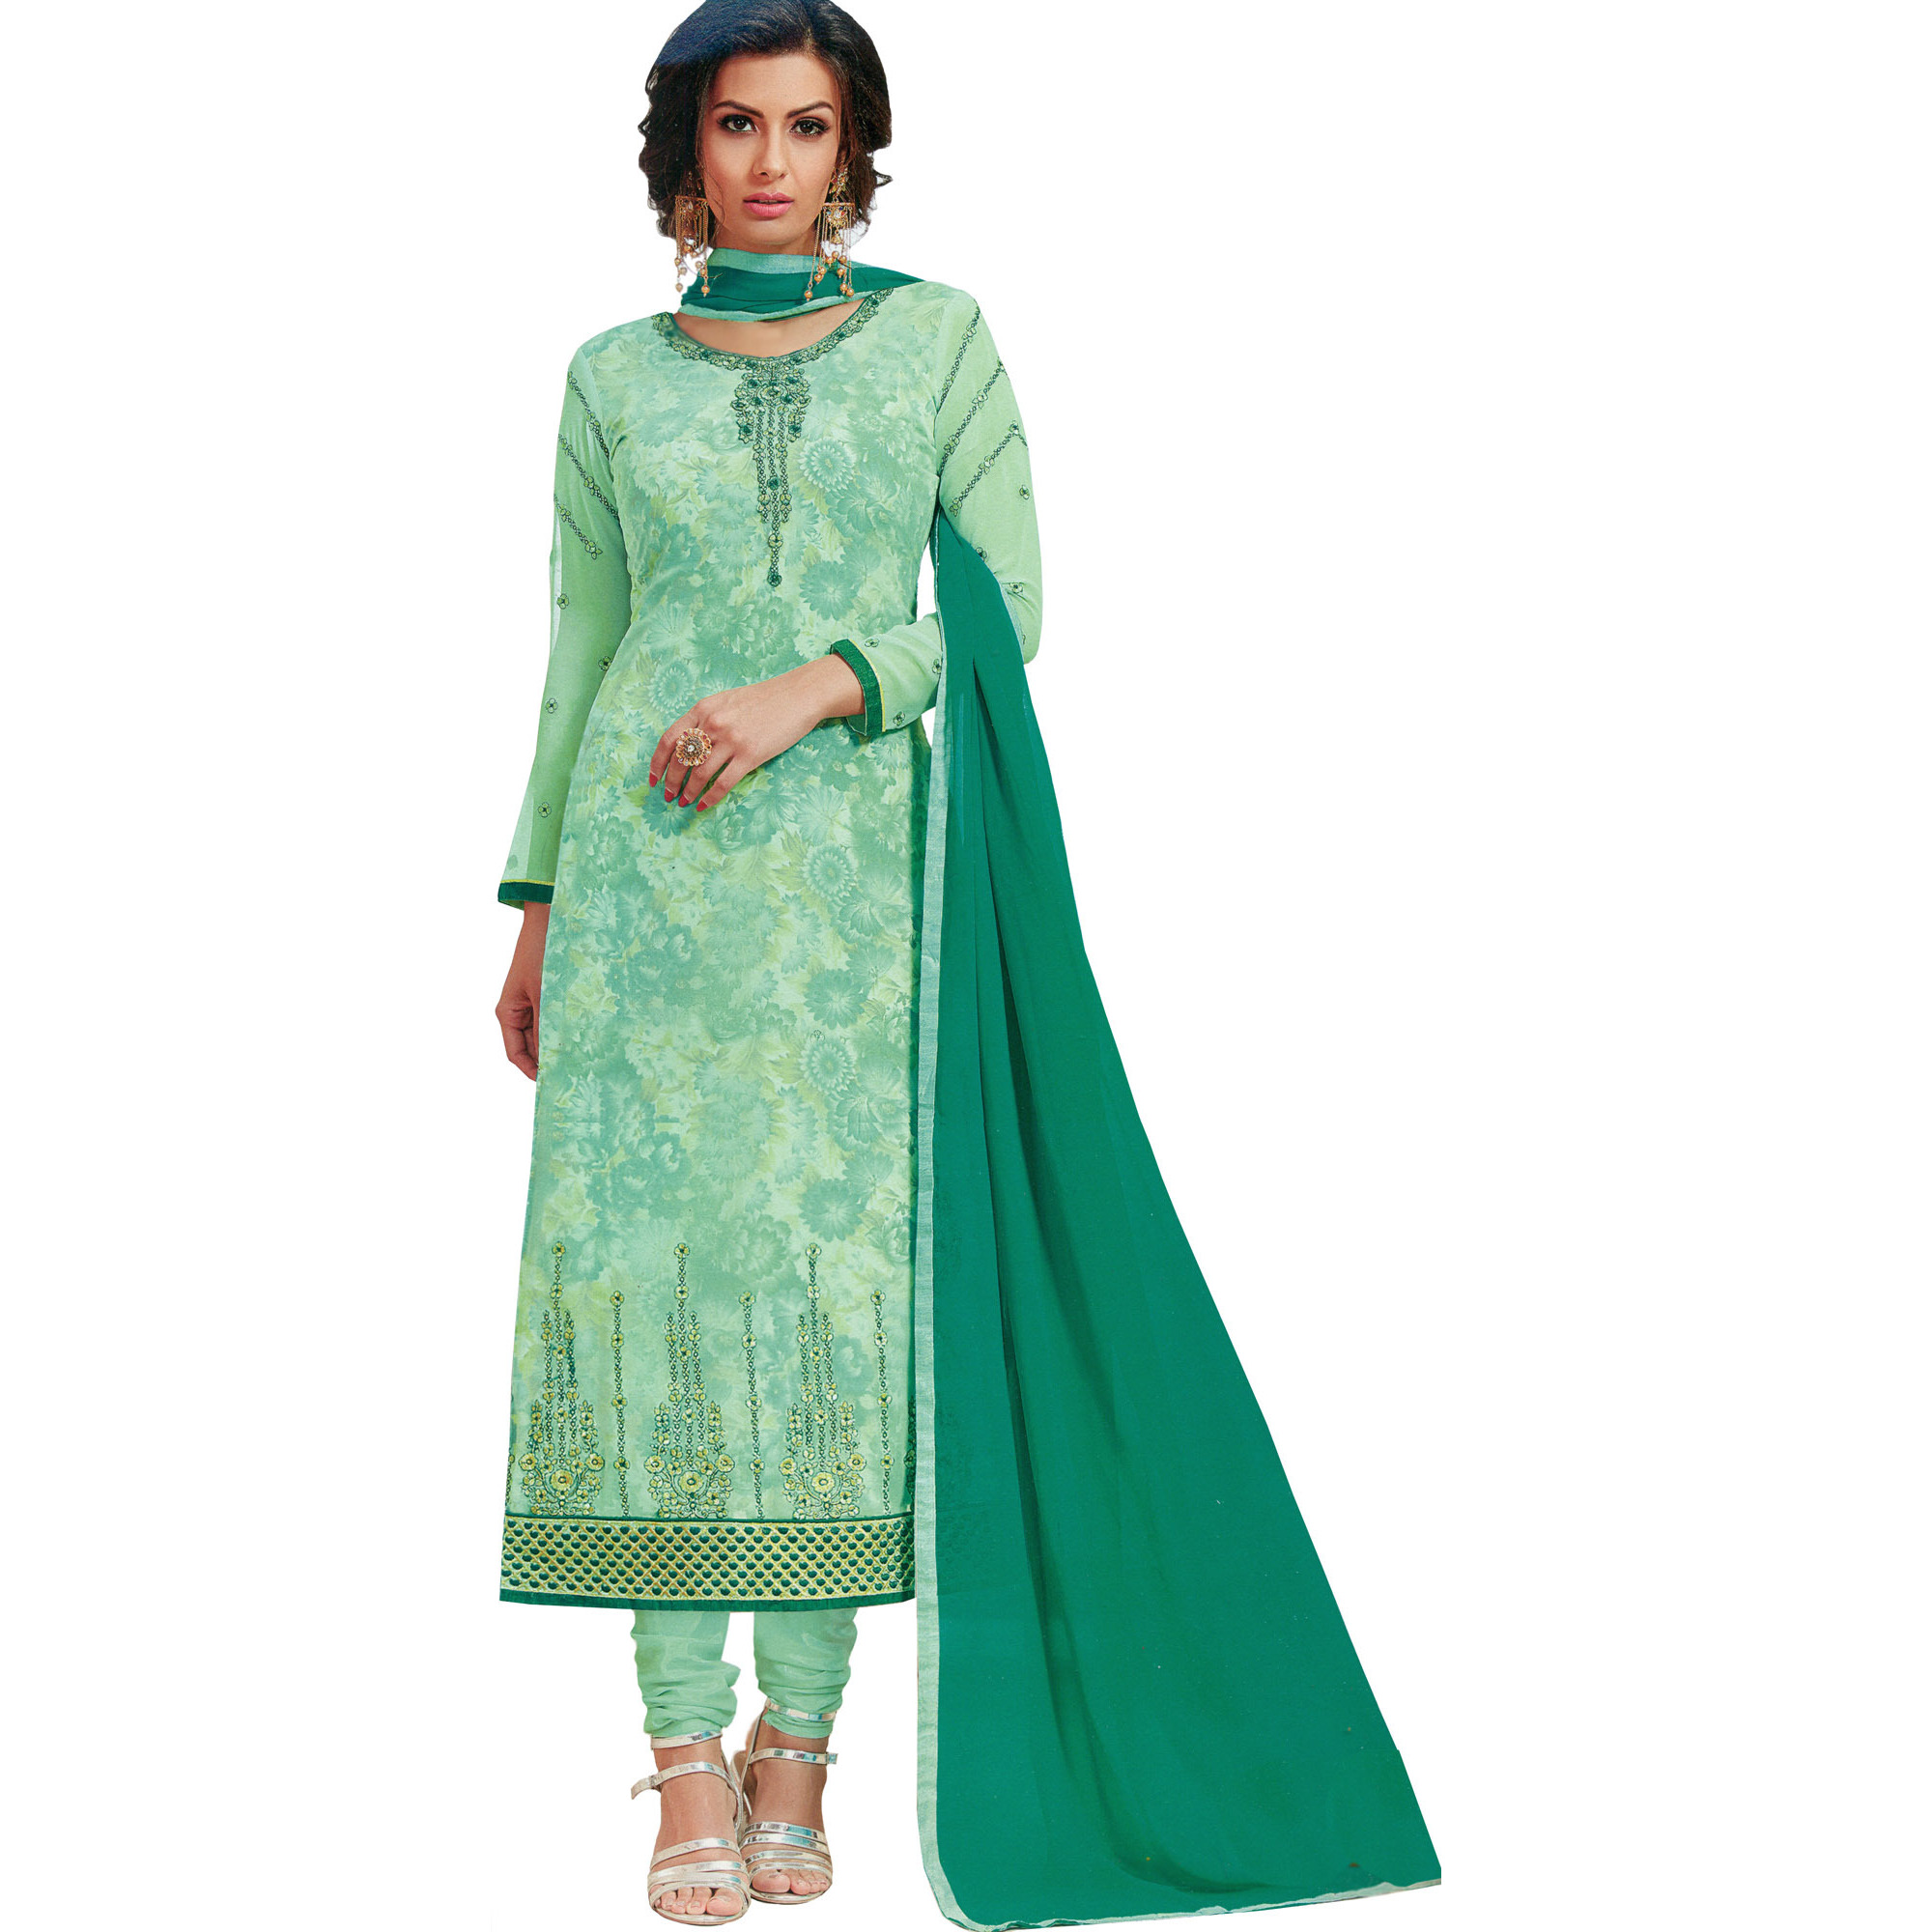 Misty-Jade Long Choodidaar Kameez Suit with Printed Flowers and Embroidery